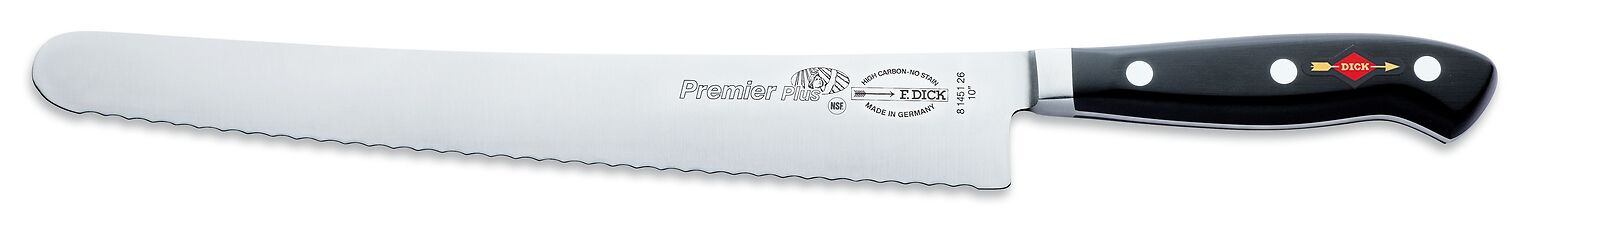 "F. Dick (8145126) 10"" Utility Knife, Serrated Edge, Forged-cityfoodequipment.com"